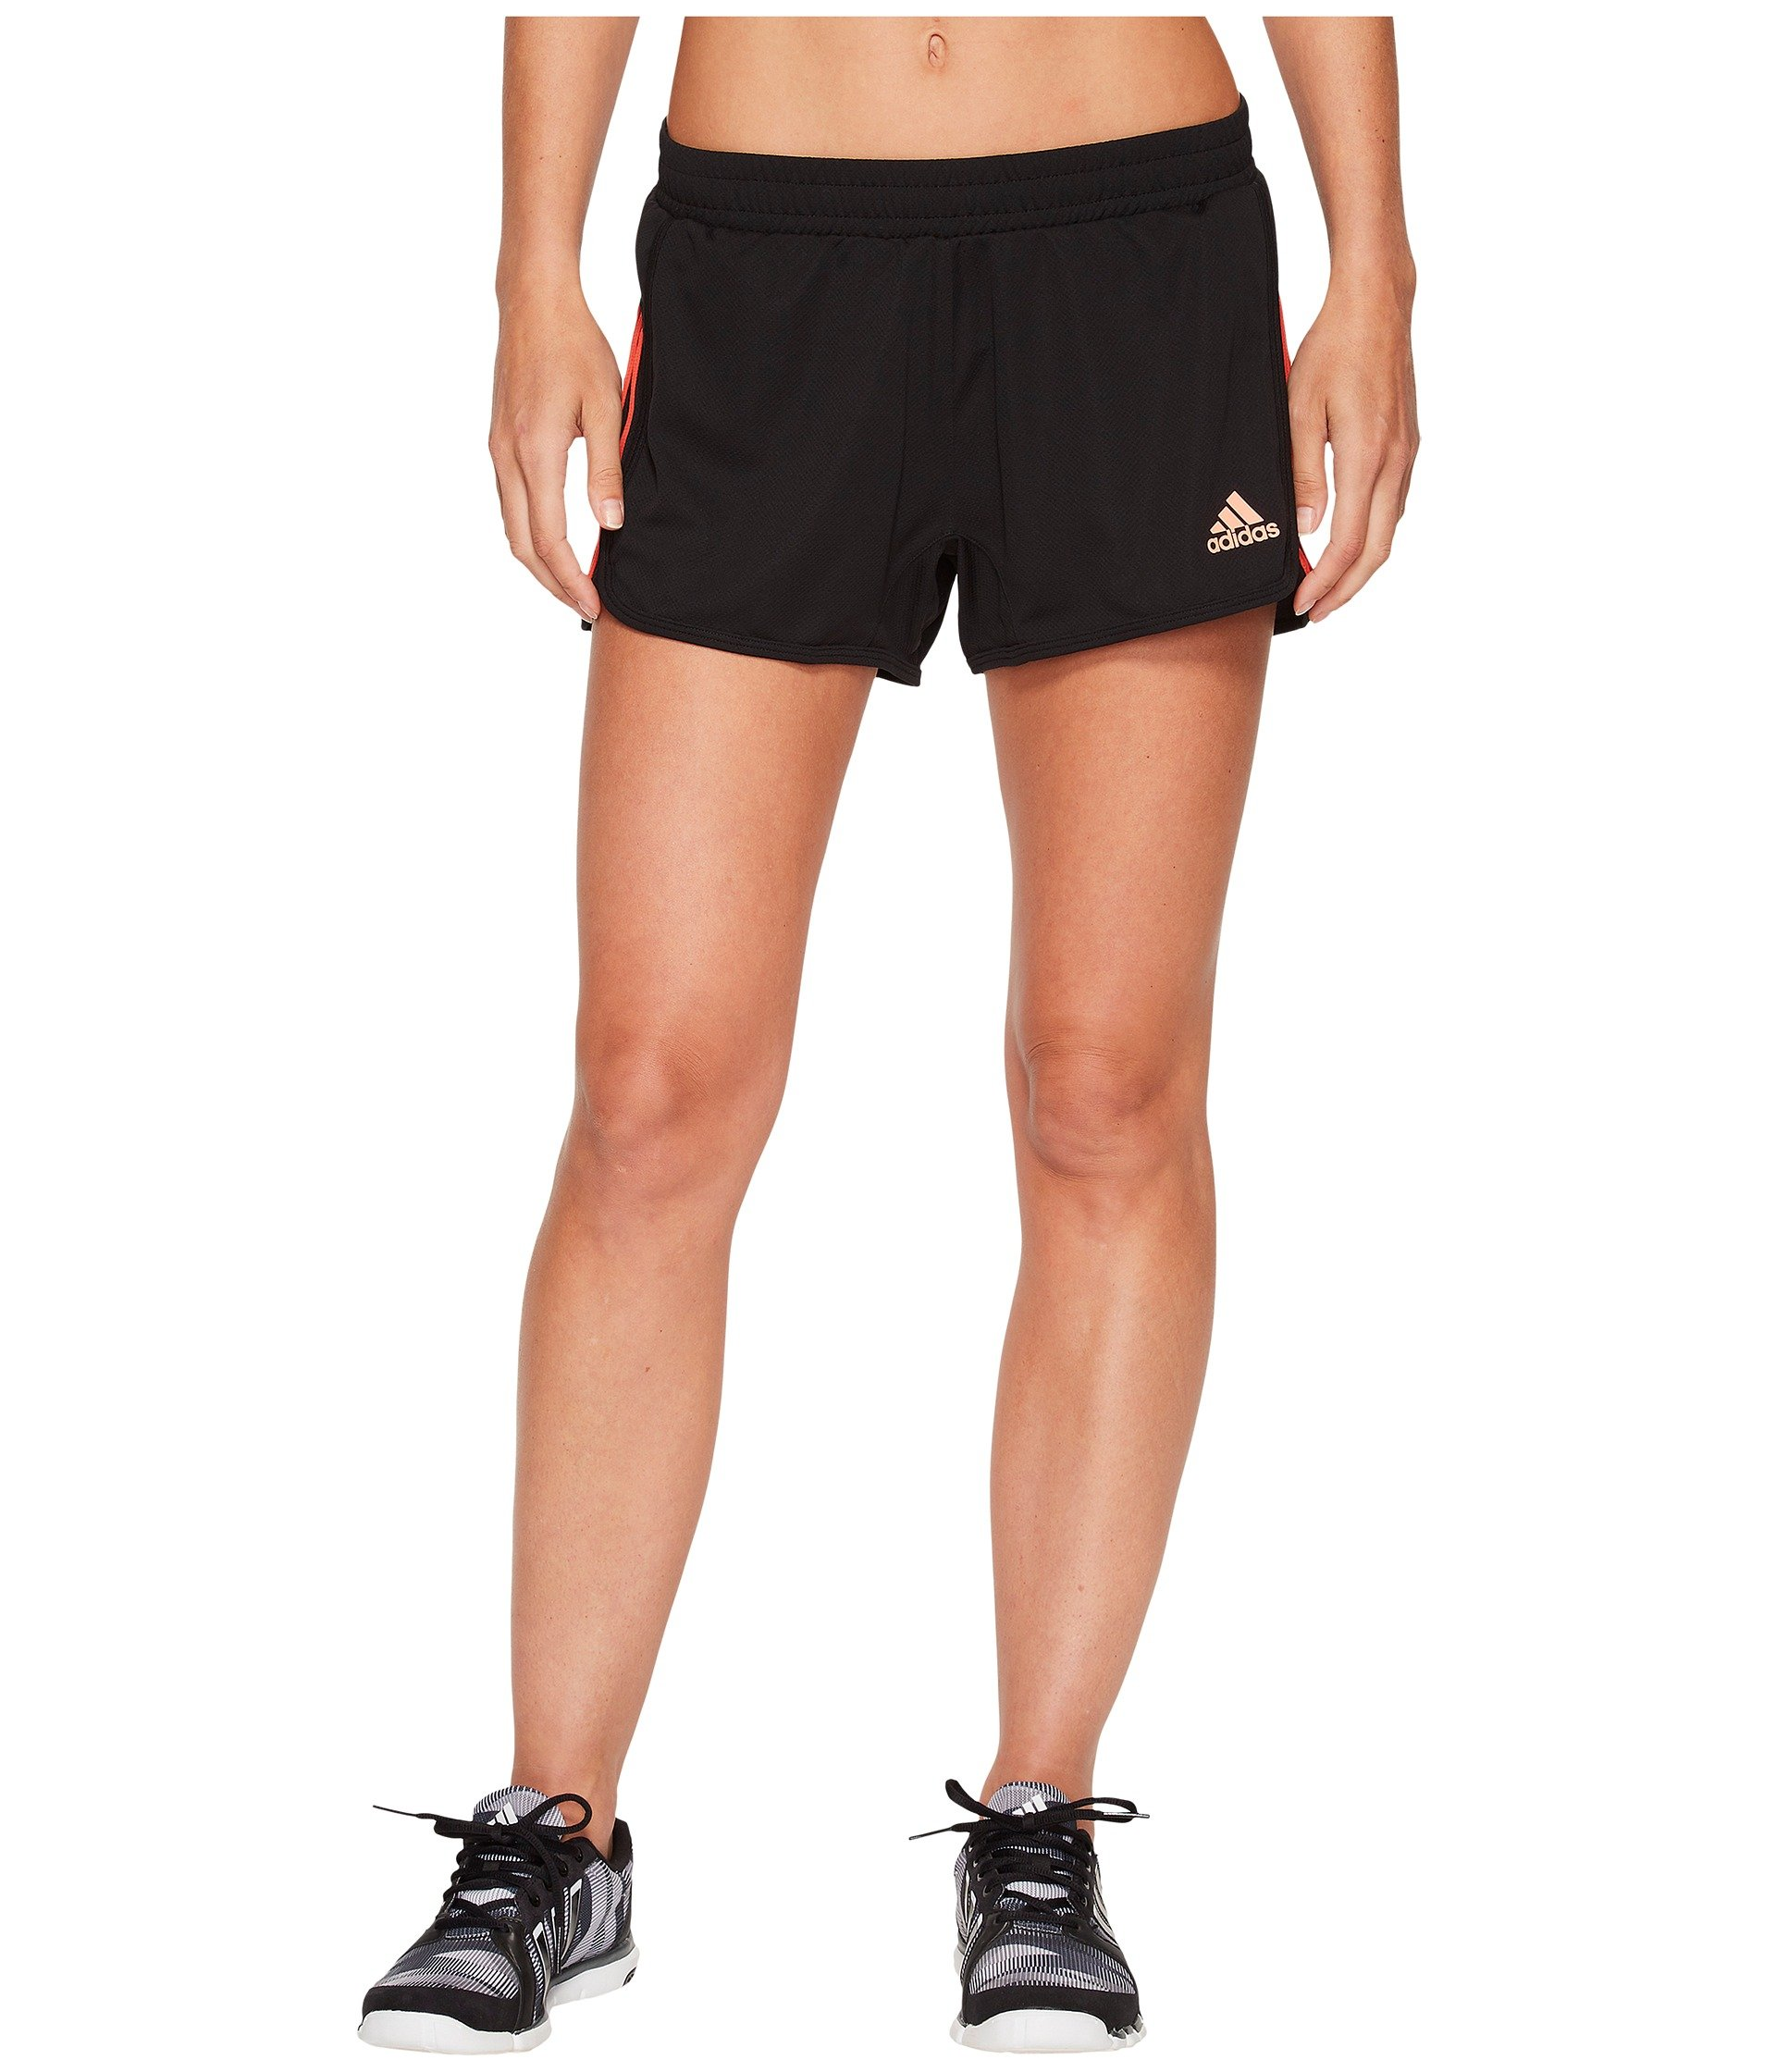 adidas Women's D2m Knit Shorts Black/Real Coral X-Small 3 3